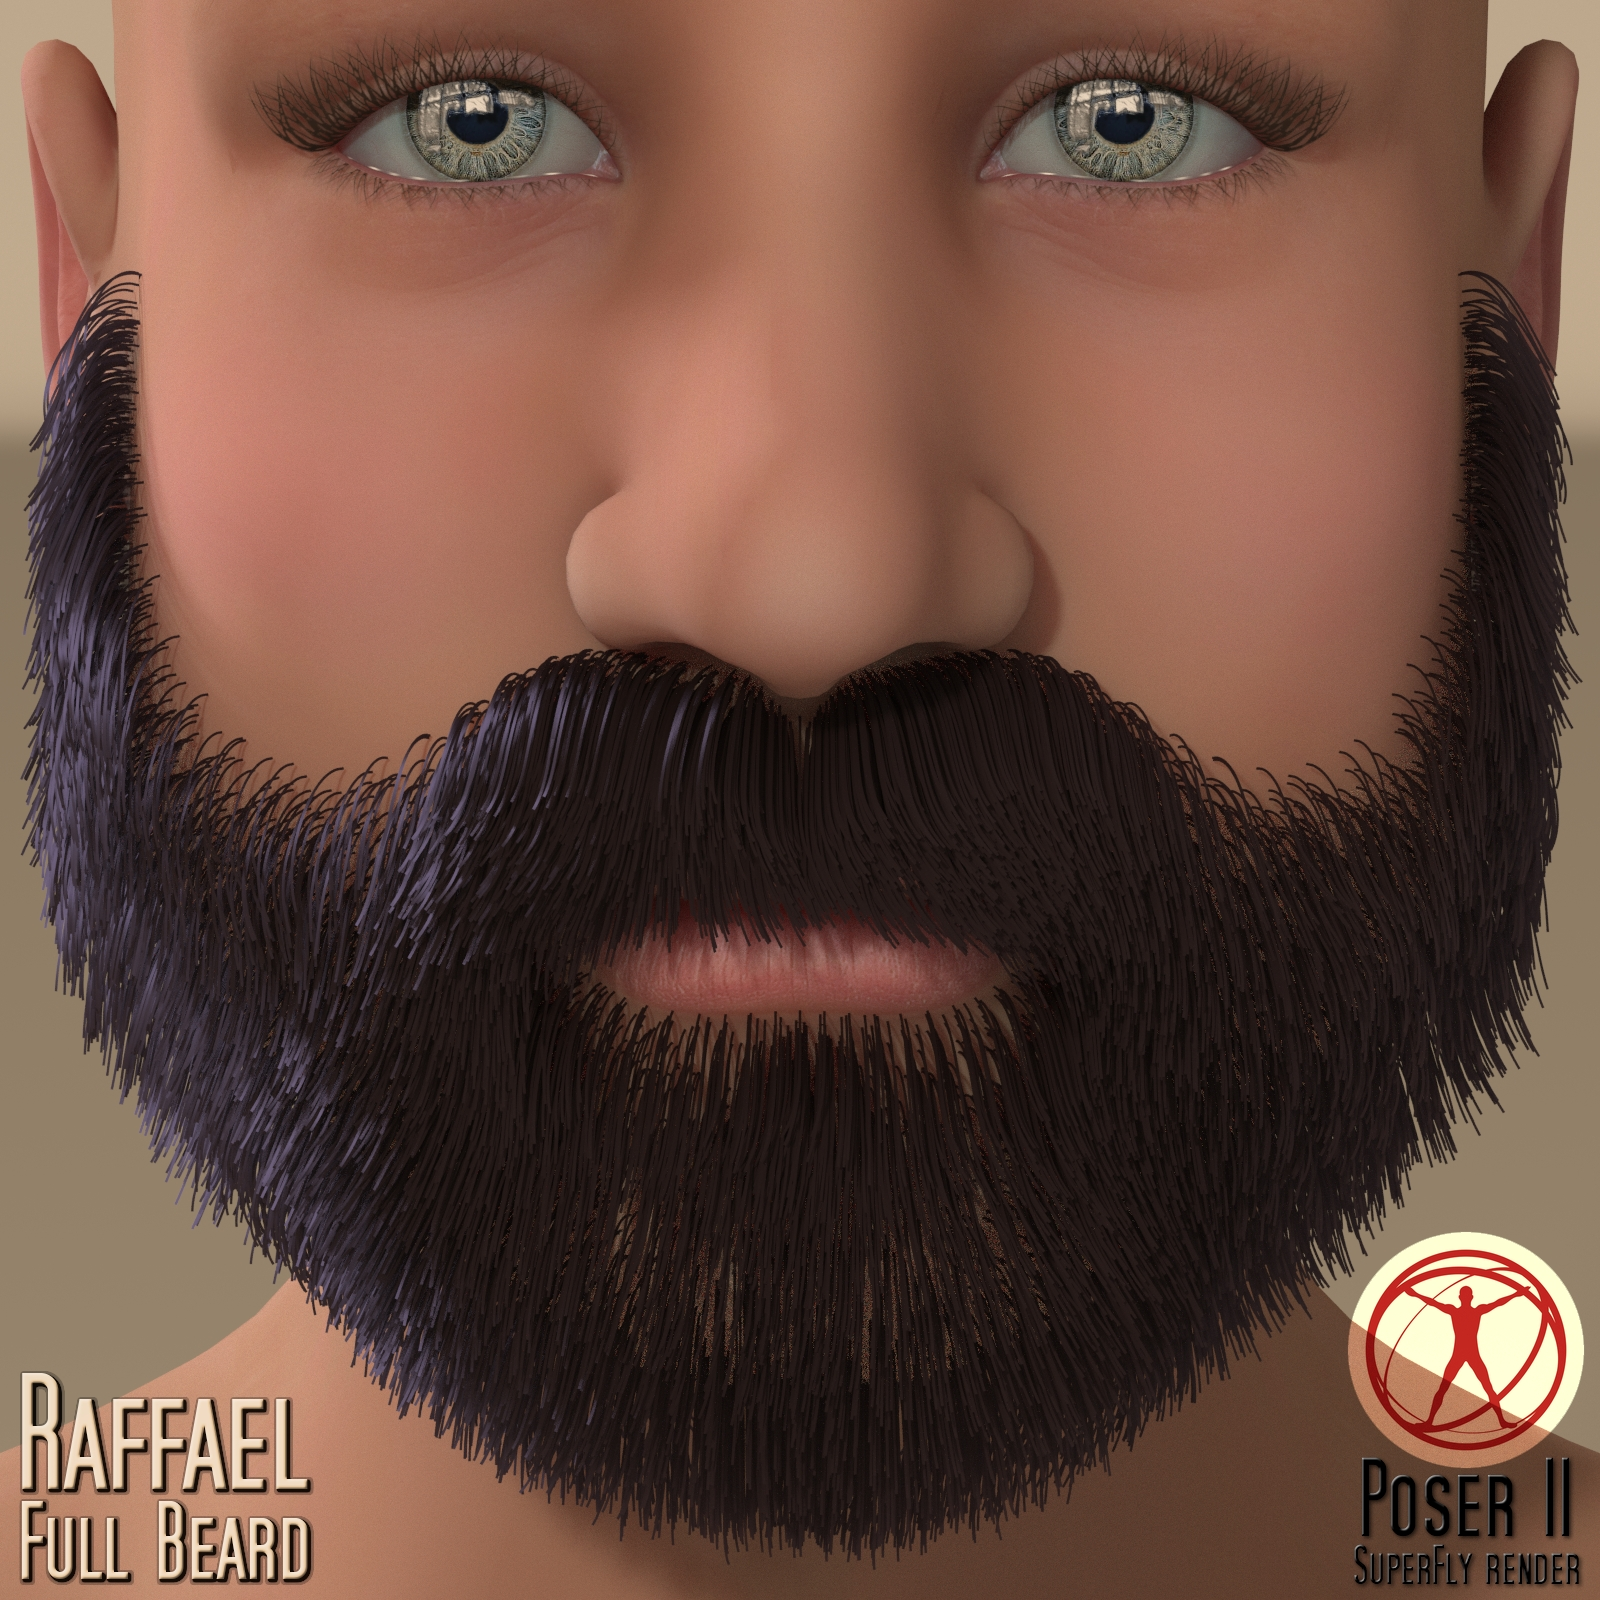 Raffael - Full Beard